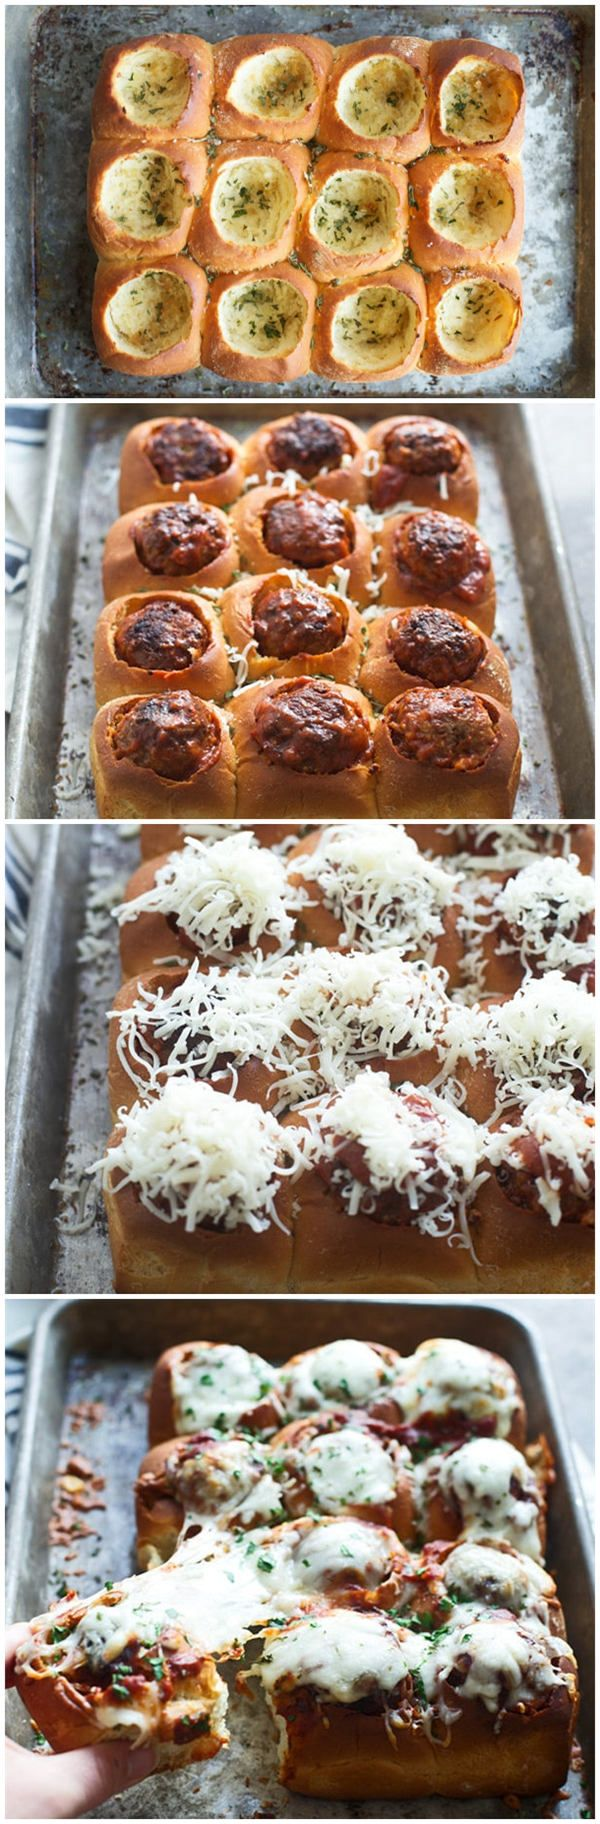 Buttery rolls are hallowed out, made into garlic bread and then stuffed with meatballs, sauce and cheese. They're basically a compact meatba...